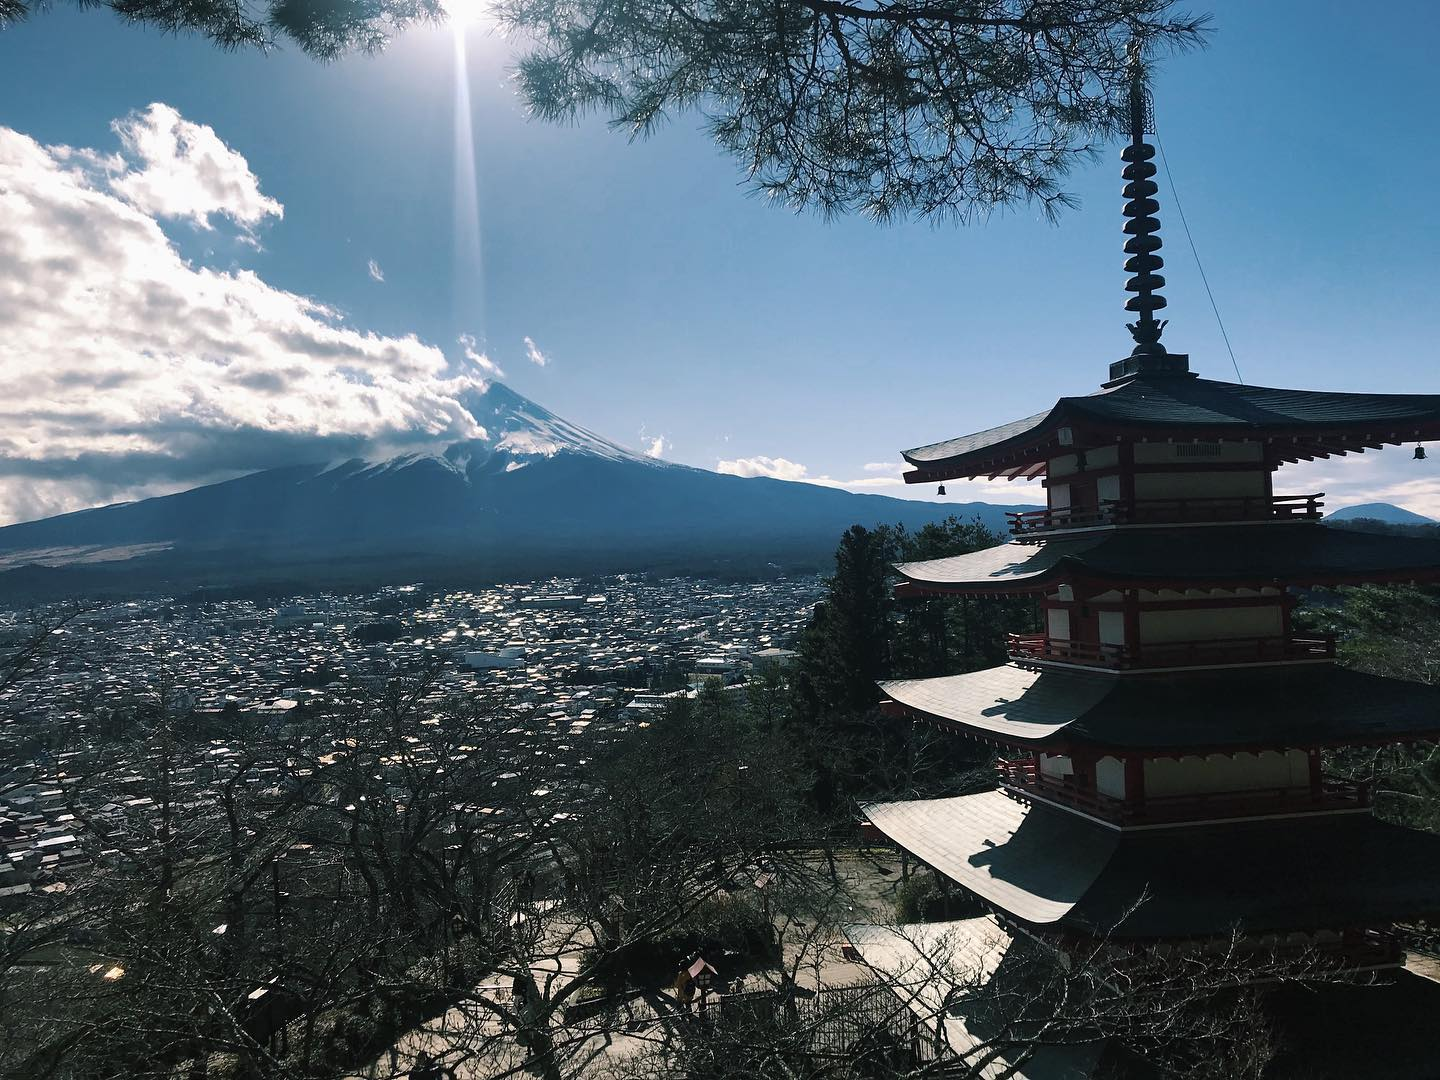 _ Here's today's from AOI Global at Arakura Sengen Shrine in Yamanashi Prefecture.   This beautiful shrine is a hotspot for tourists in Japan.   Mt Fuji erupted once in 807 A.D. under the reign of the 51st Emperor Heijo. In August of the same year, an imperial envoy from the Imperial Court went to this shrine to conduct a fire extinguishing ceremony for the safety of the land.  This ceremony is held every 60 years and is a special ritual in which the gods weave and change their garments while keeping themselves clean for a week at the shrine.  #weeklyinspiration #remoteshooting